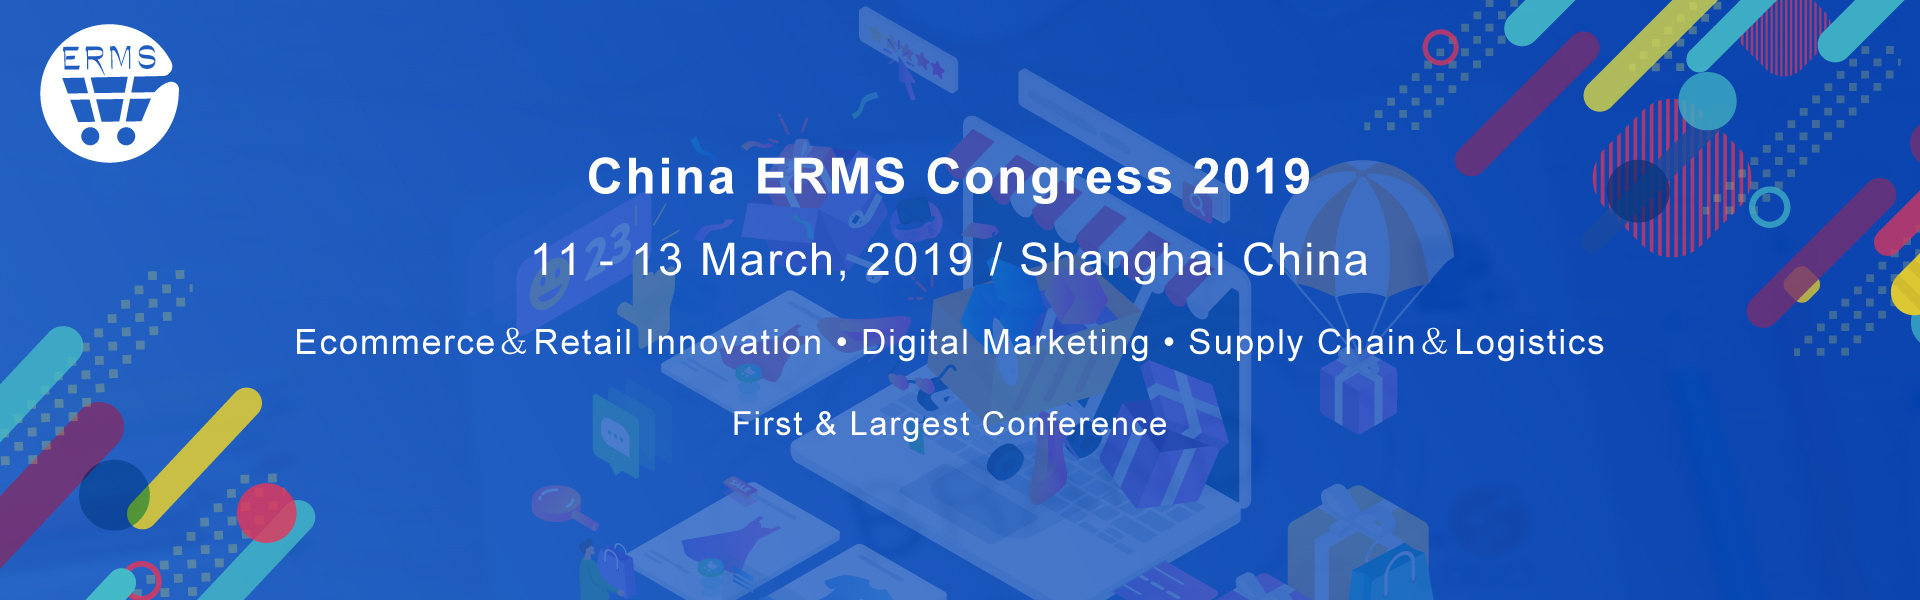 China ERMS Summit 2019_ECV International